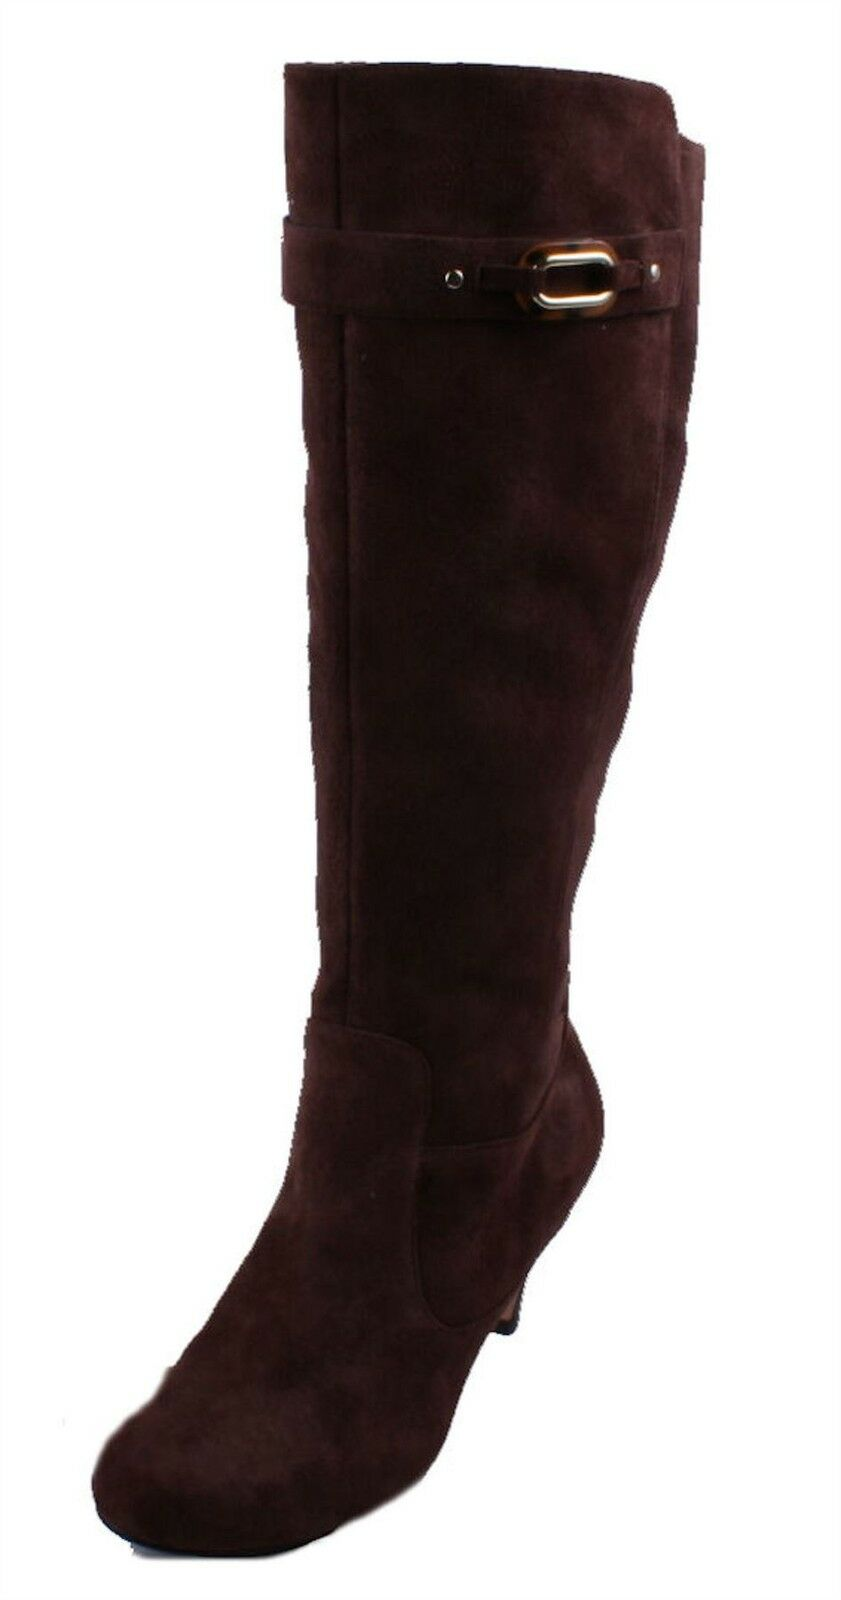 Cole High Haan Lana Donna Chestnut Suede Leather Knee High Cole Heel Boots size 8 4f2488